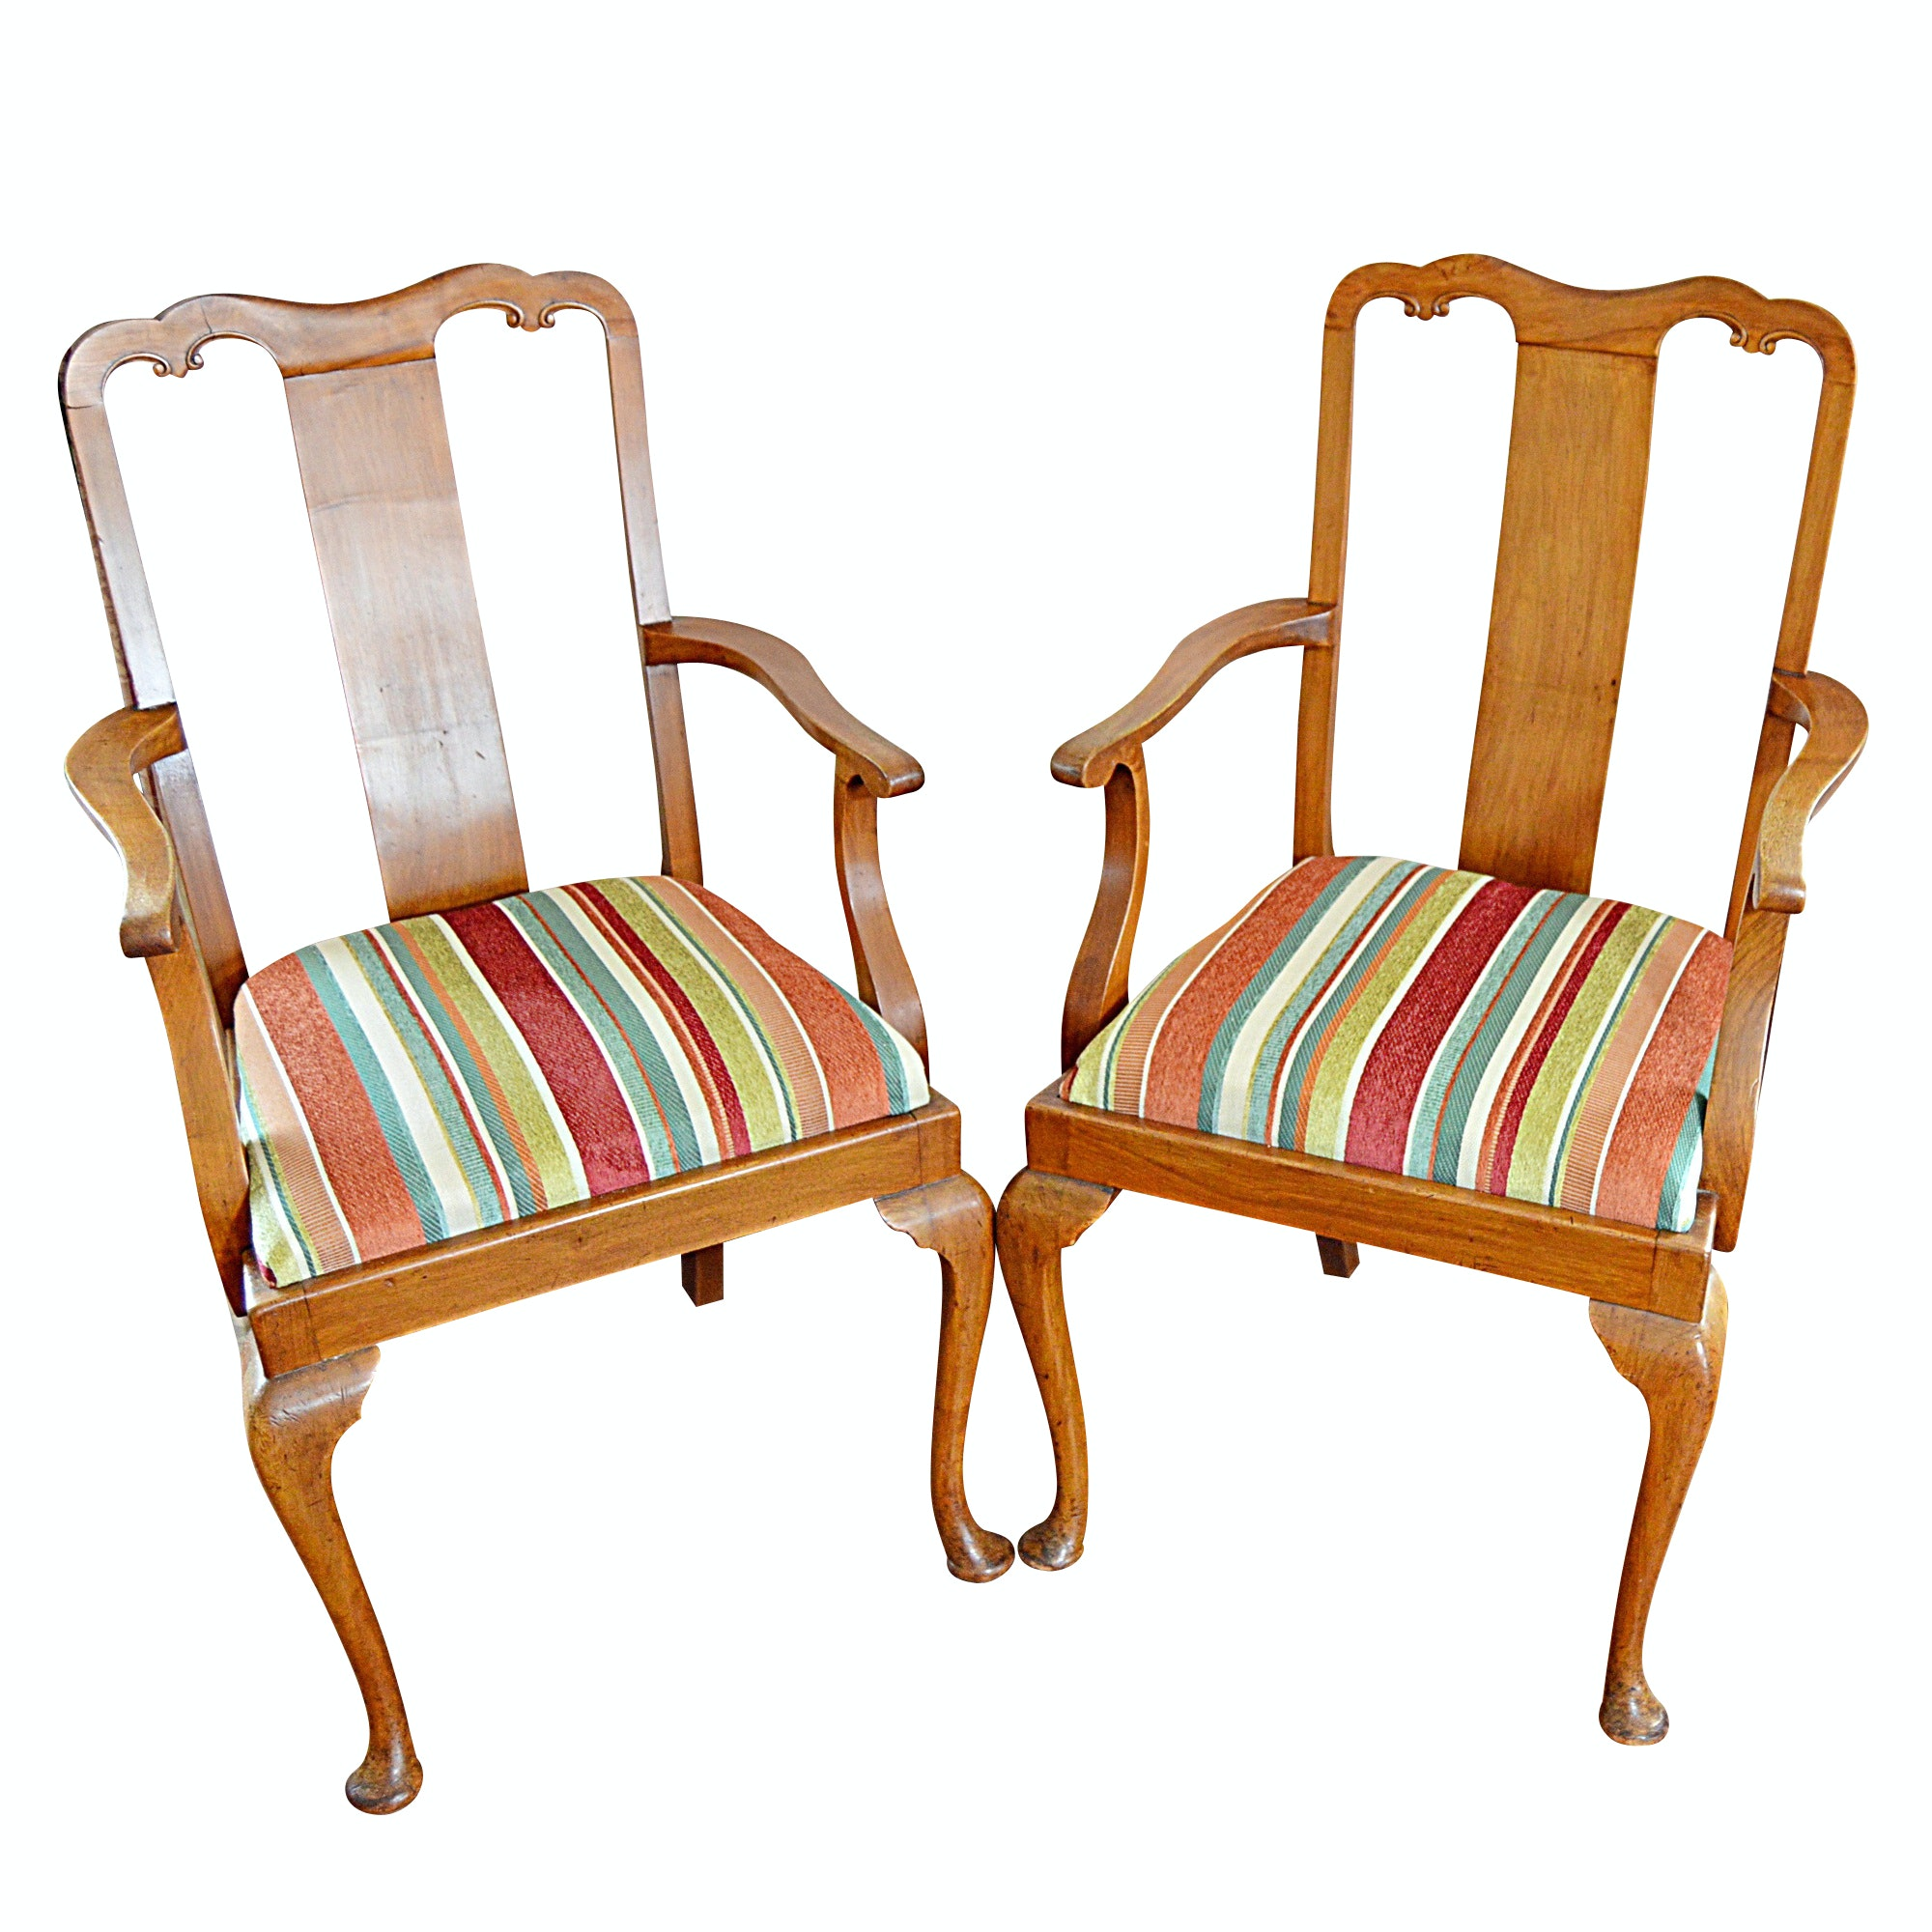 Pair of Antique Chippendale Style Chairs